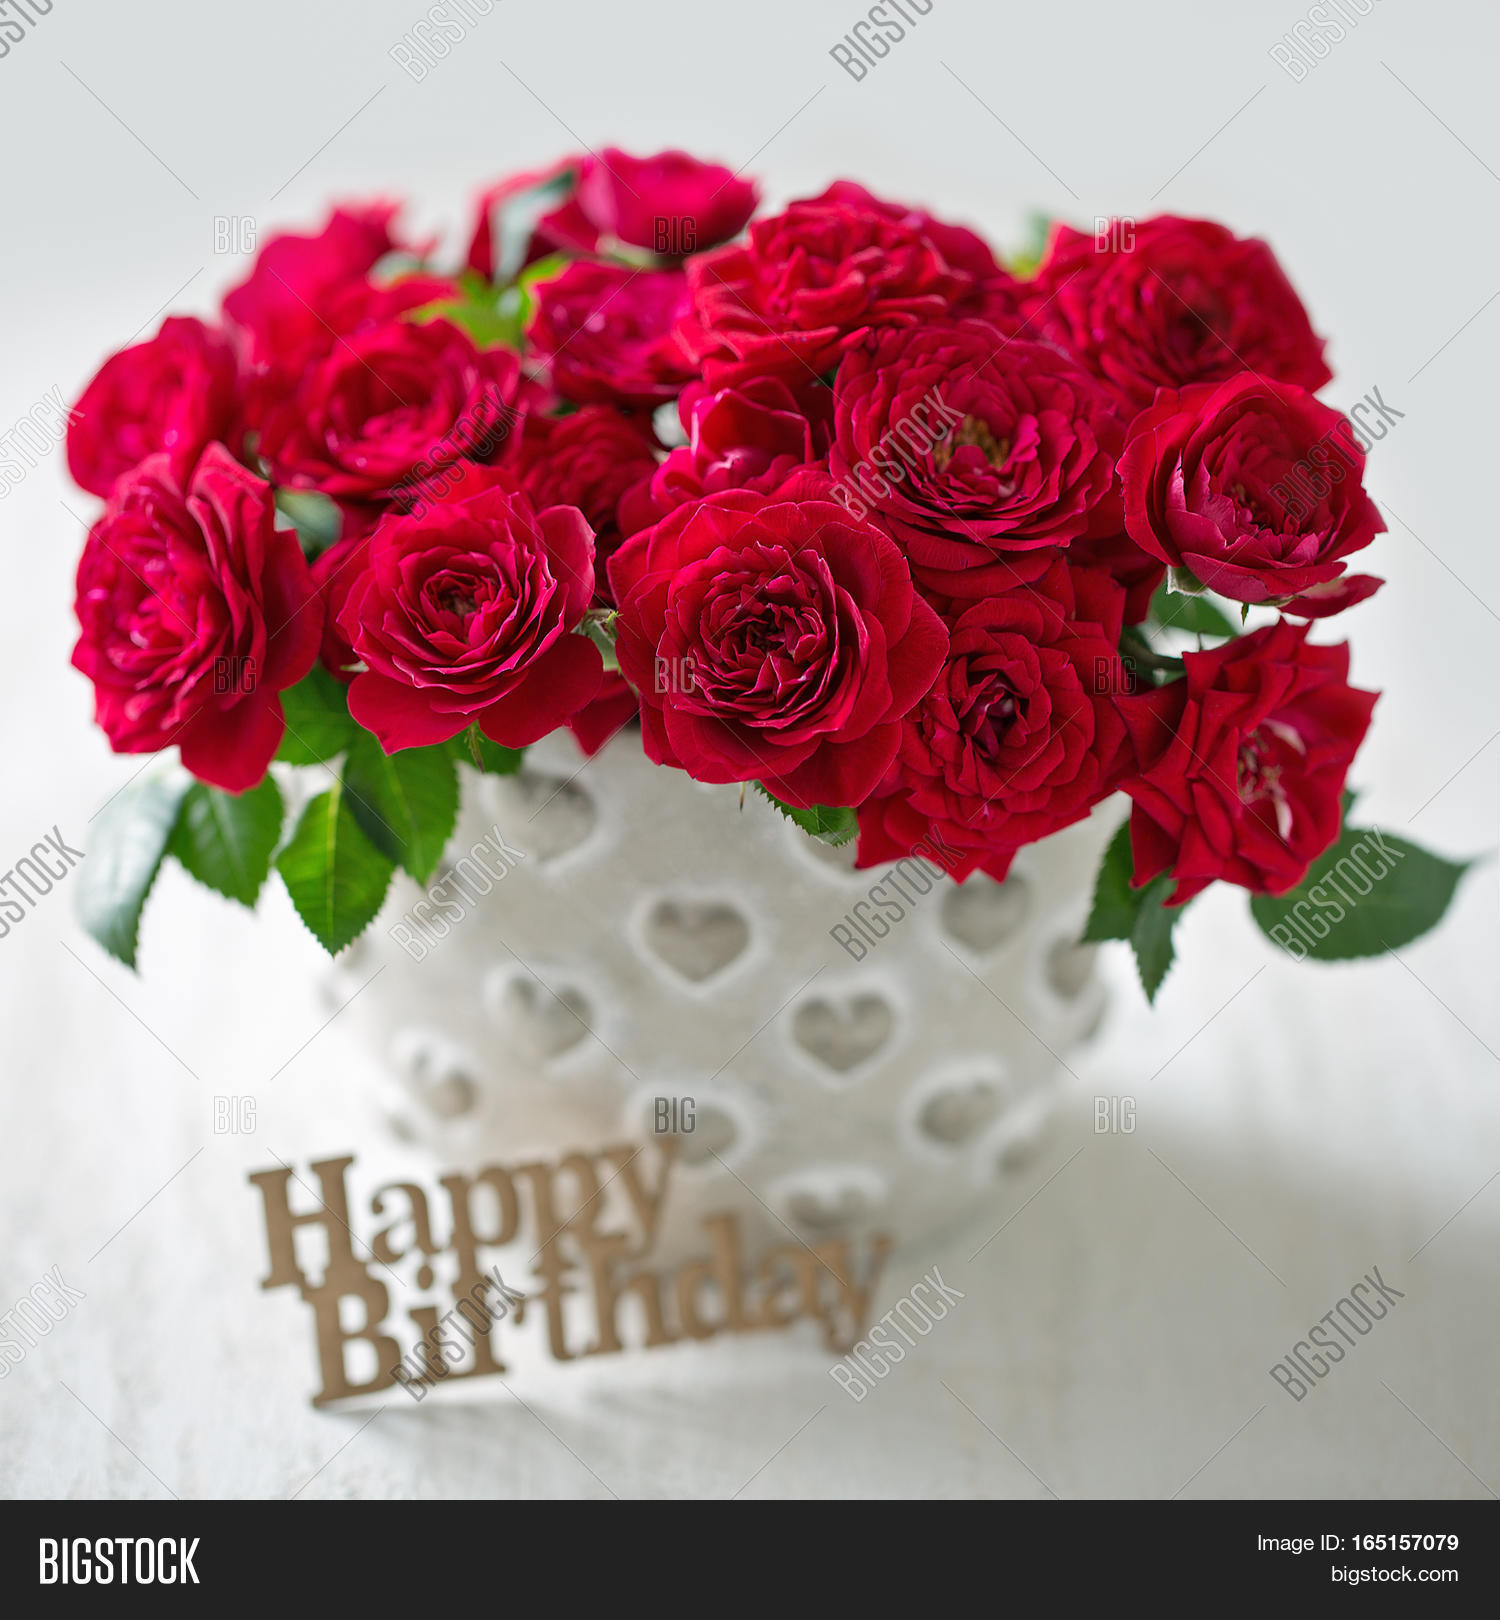 Beautiful red roses image photo free trial bigstock beautiful red roses autiful bouquet for a birthday ngratulation with a flowers izmirmasajfo